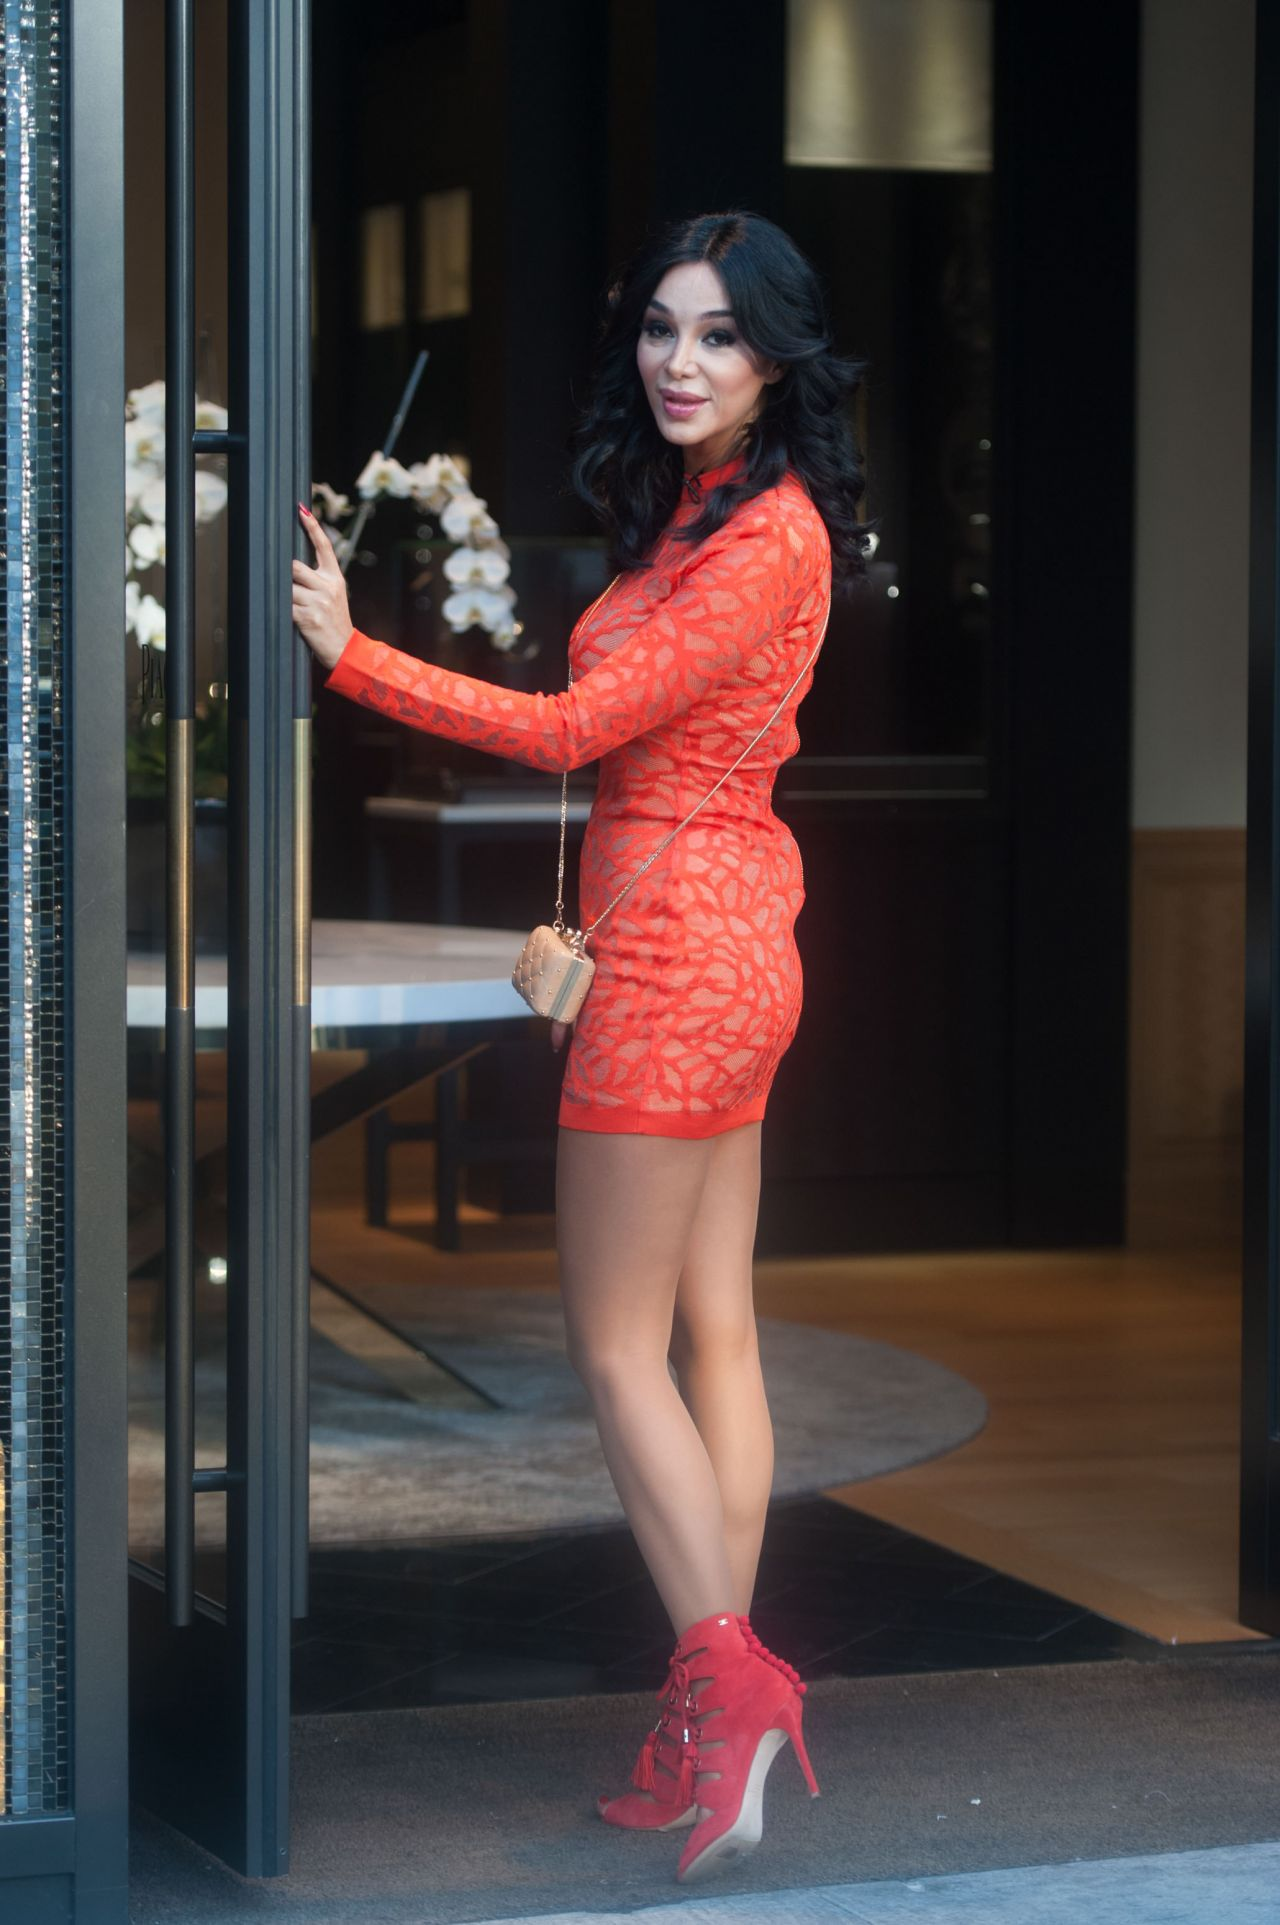 Verona Pooth In Mini Dress Out In Beverly Hills 2262016